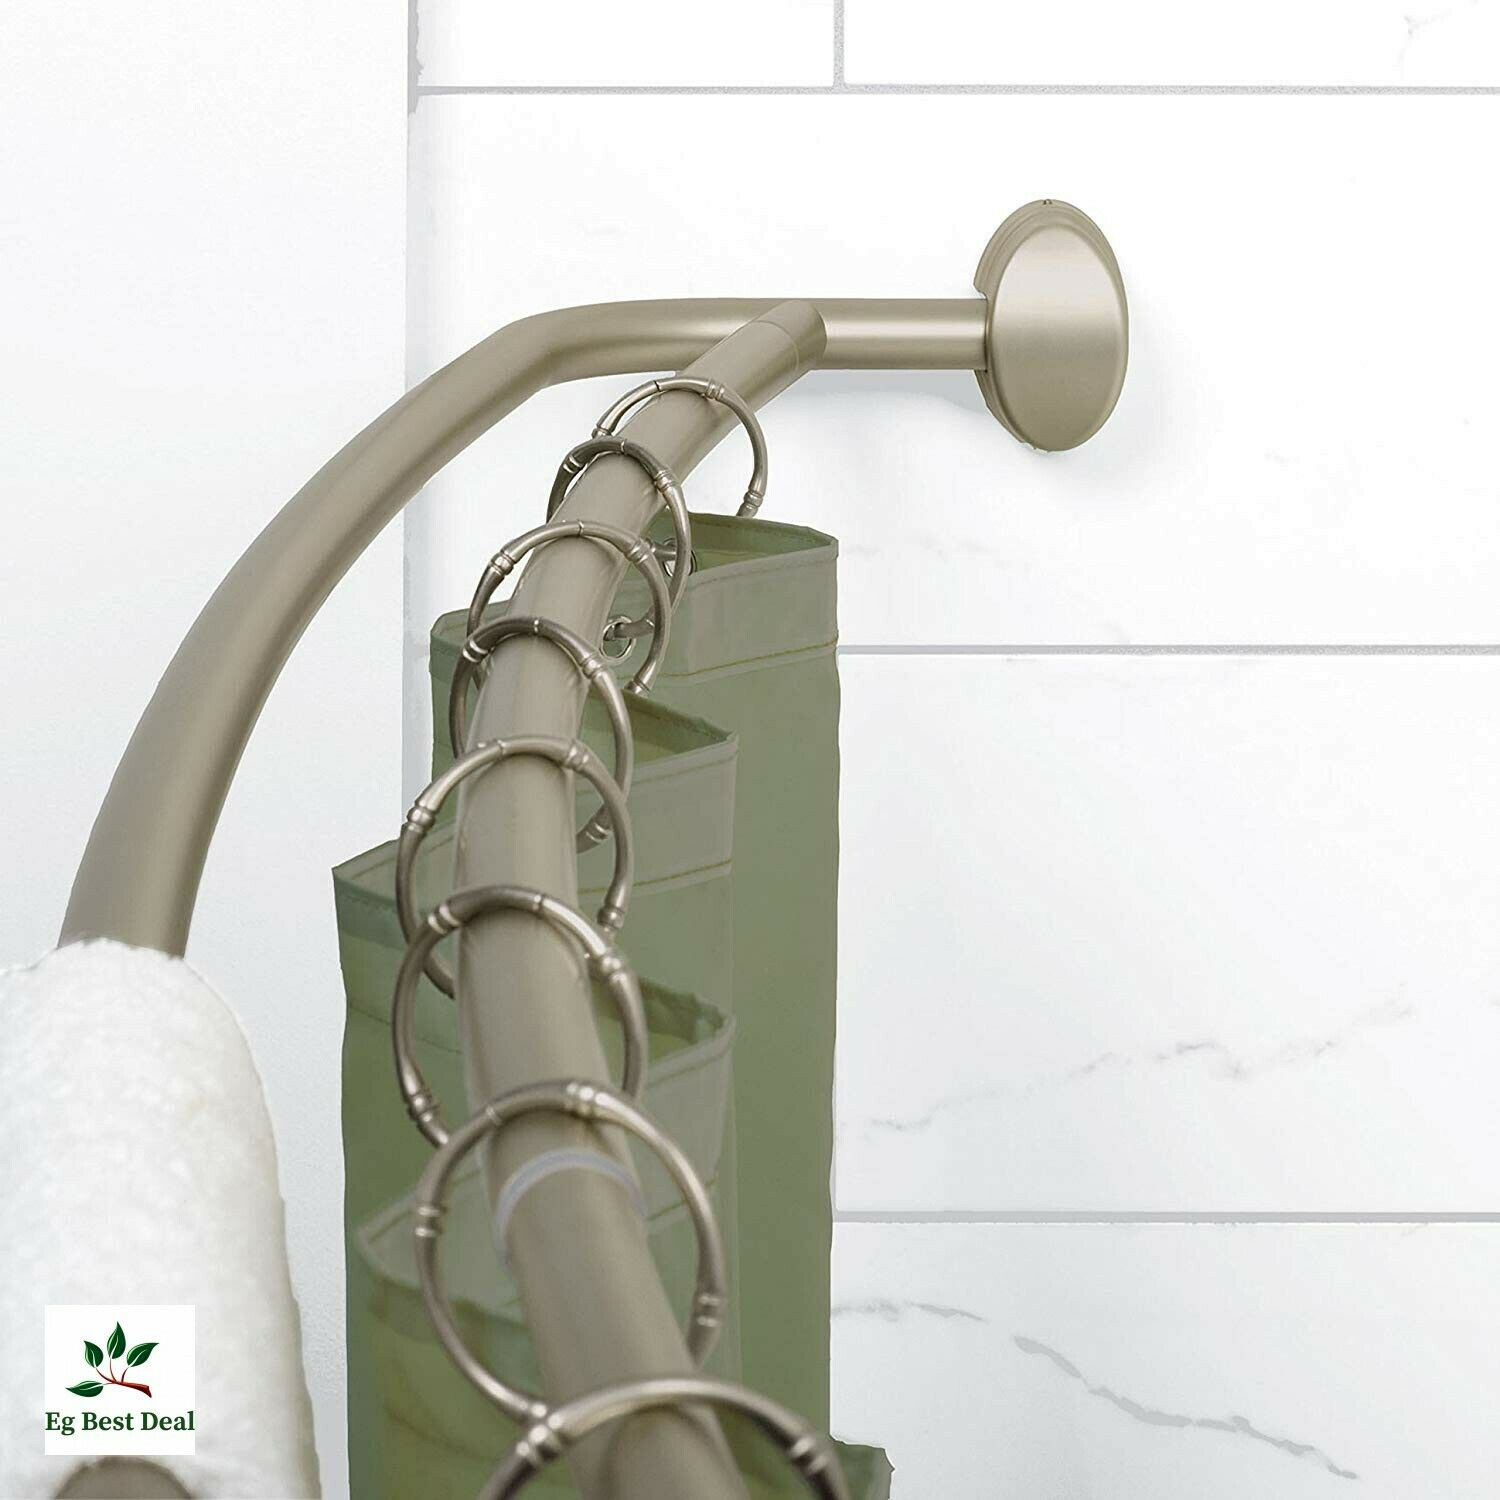 Shower Curtain Rod Curved Double No Rust 45 To 72 Bowed Aluminum Brushed Nickel